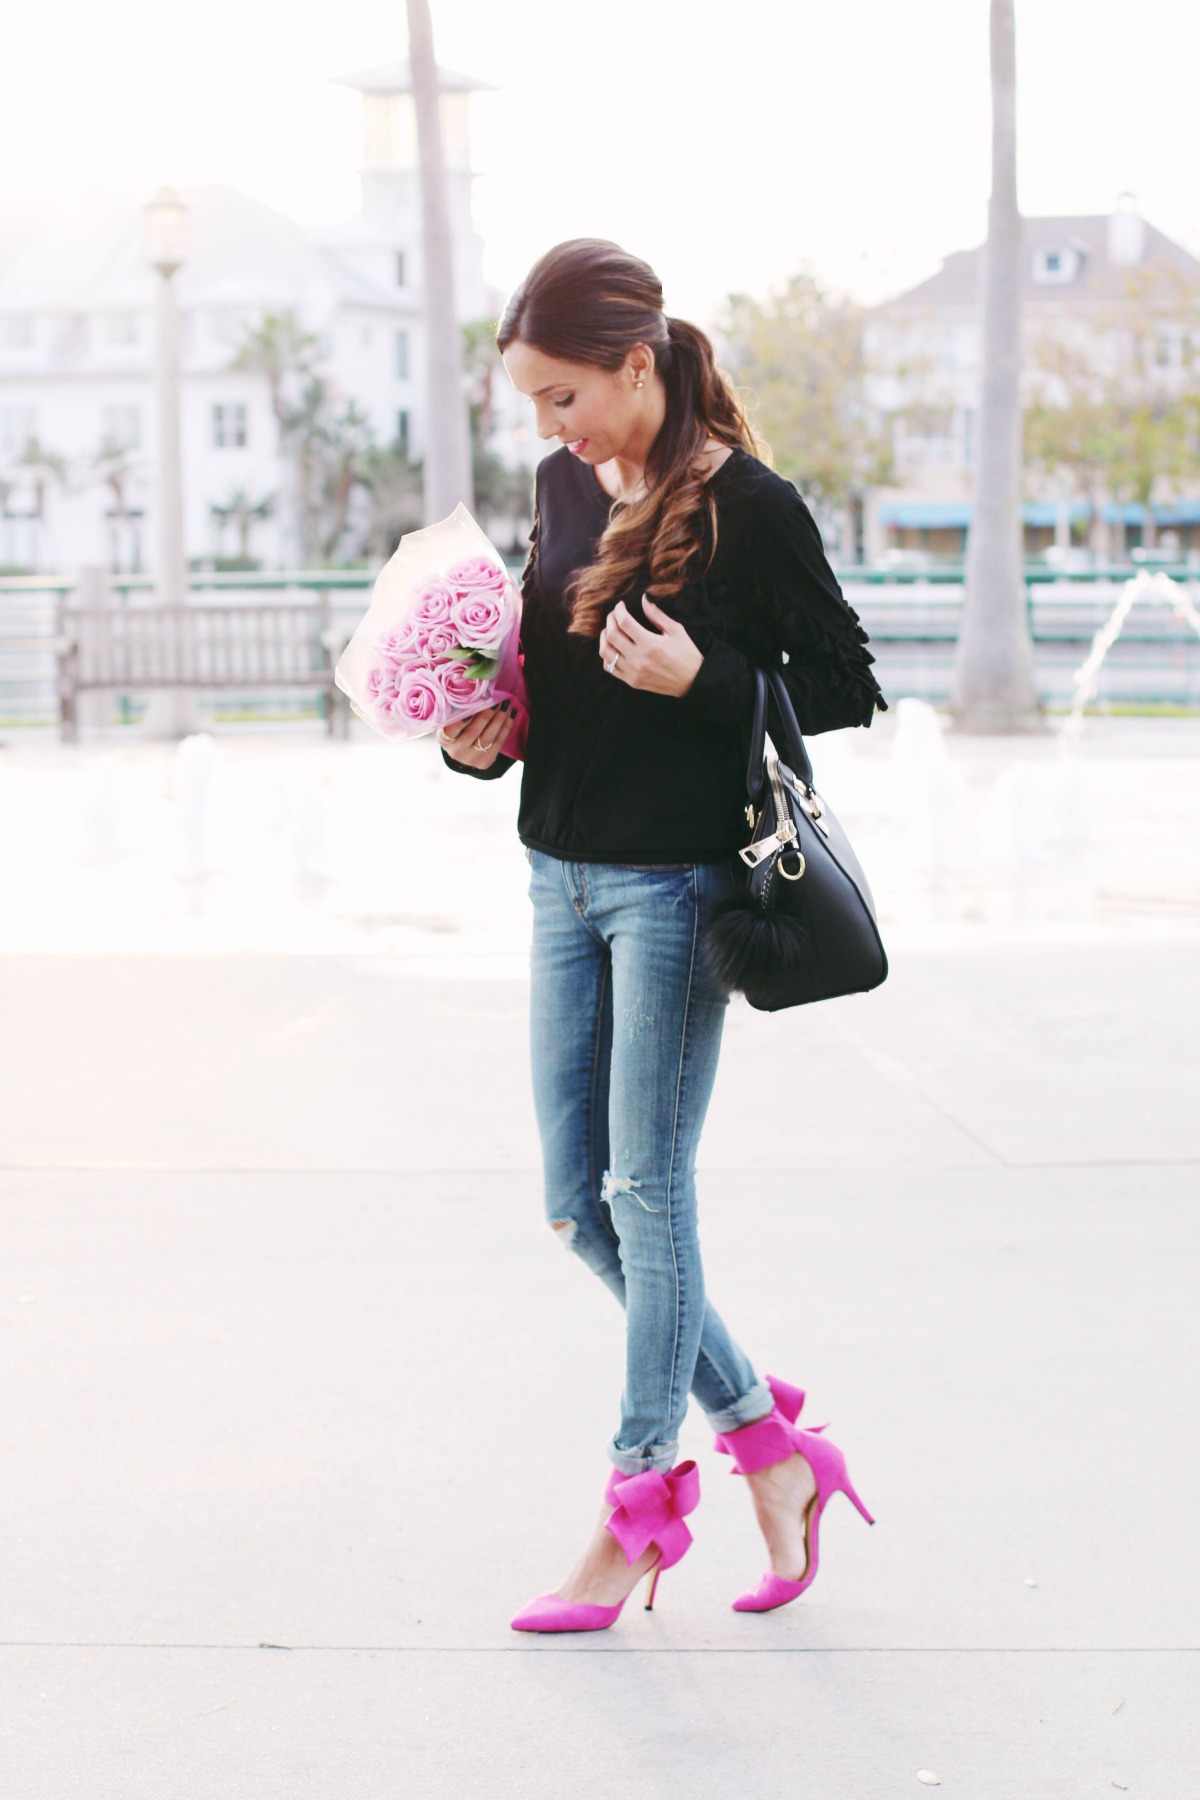 Black Tassle sweatshirt with pink bow heels